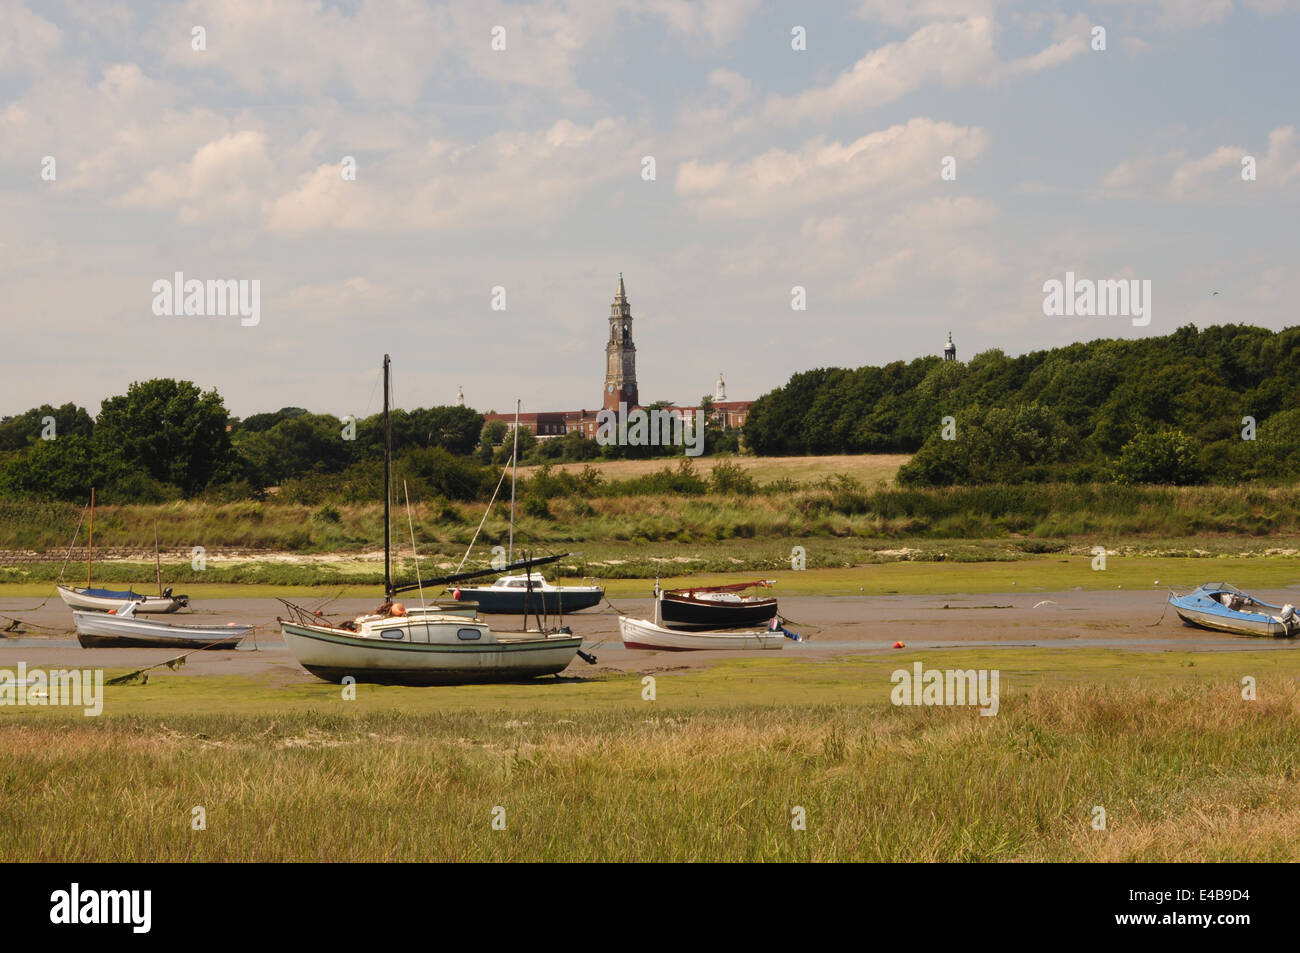 Holbrook Bay on the River Stour, Suffolk, U with the spire of the Royal Hospital School visible in the background. - Stock Image